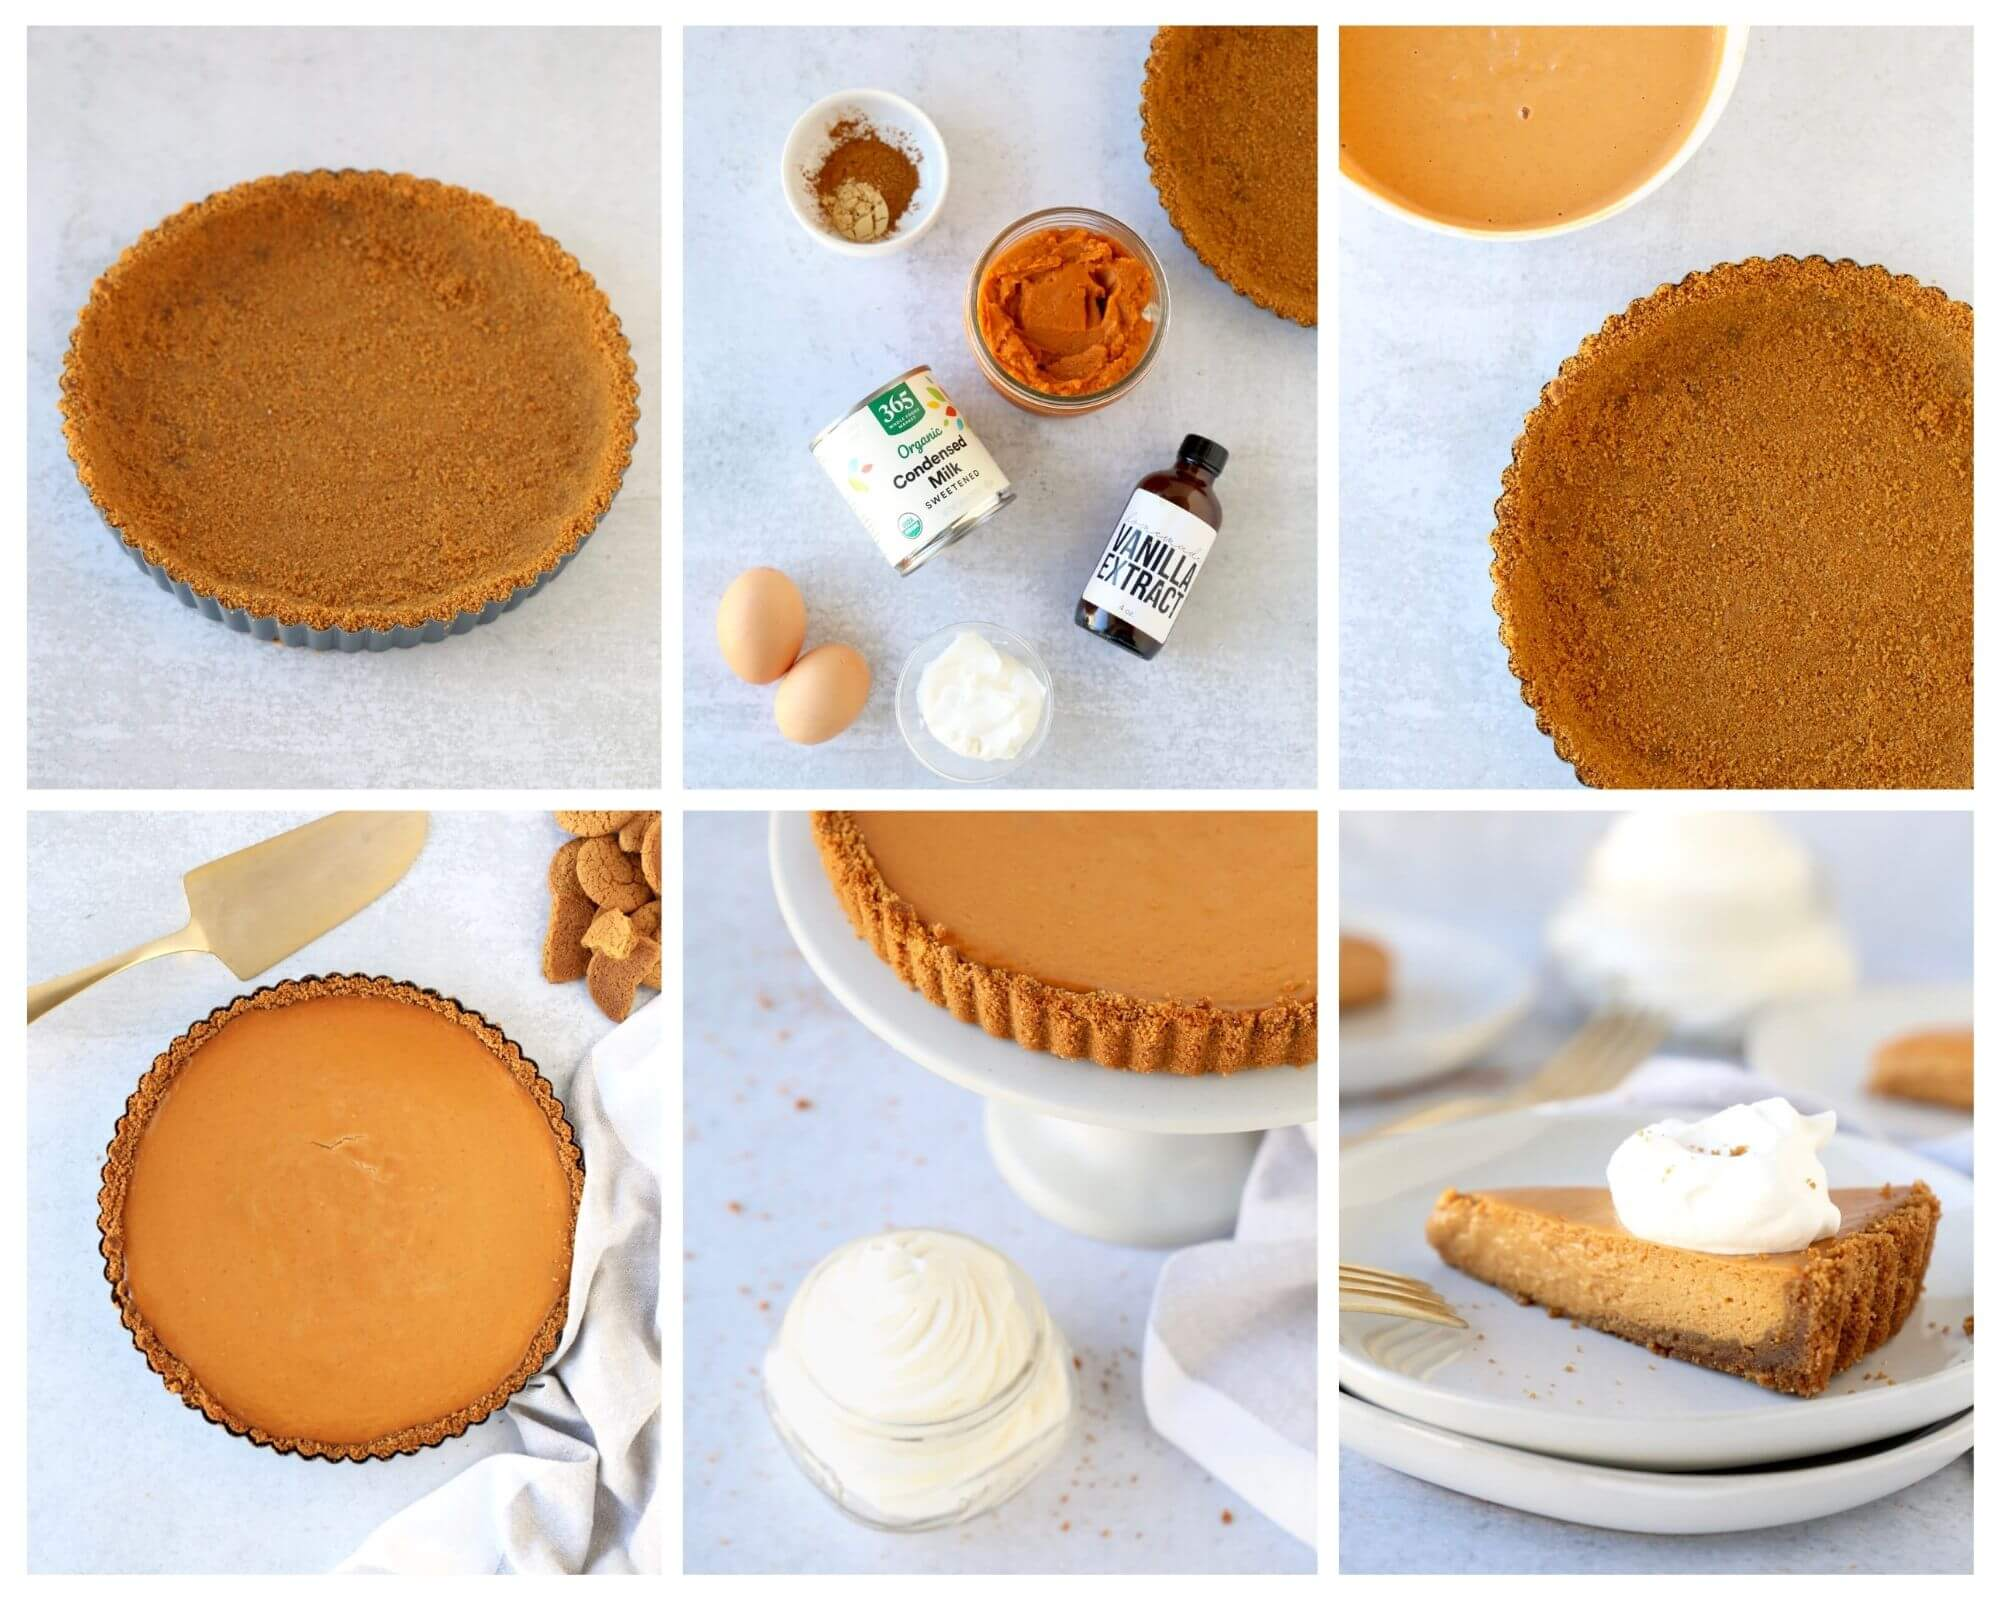 6 photos showing the step by step process of making the pumpkin gingersnap tart